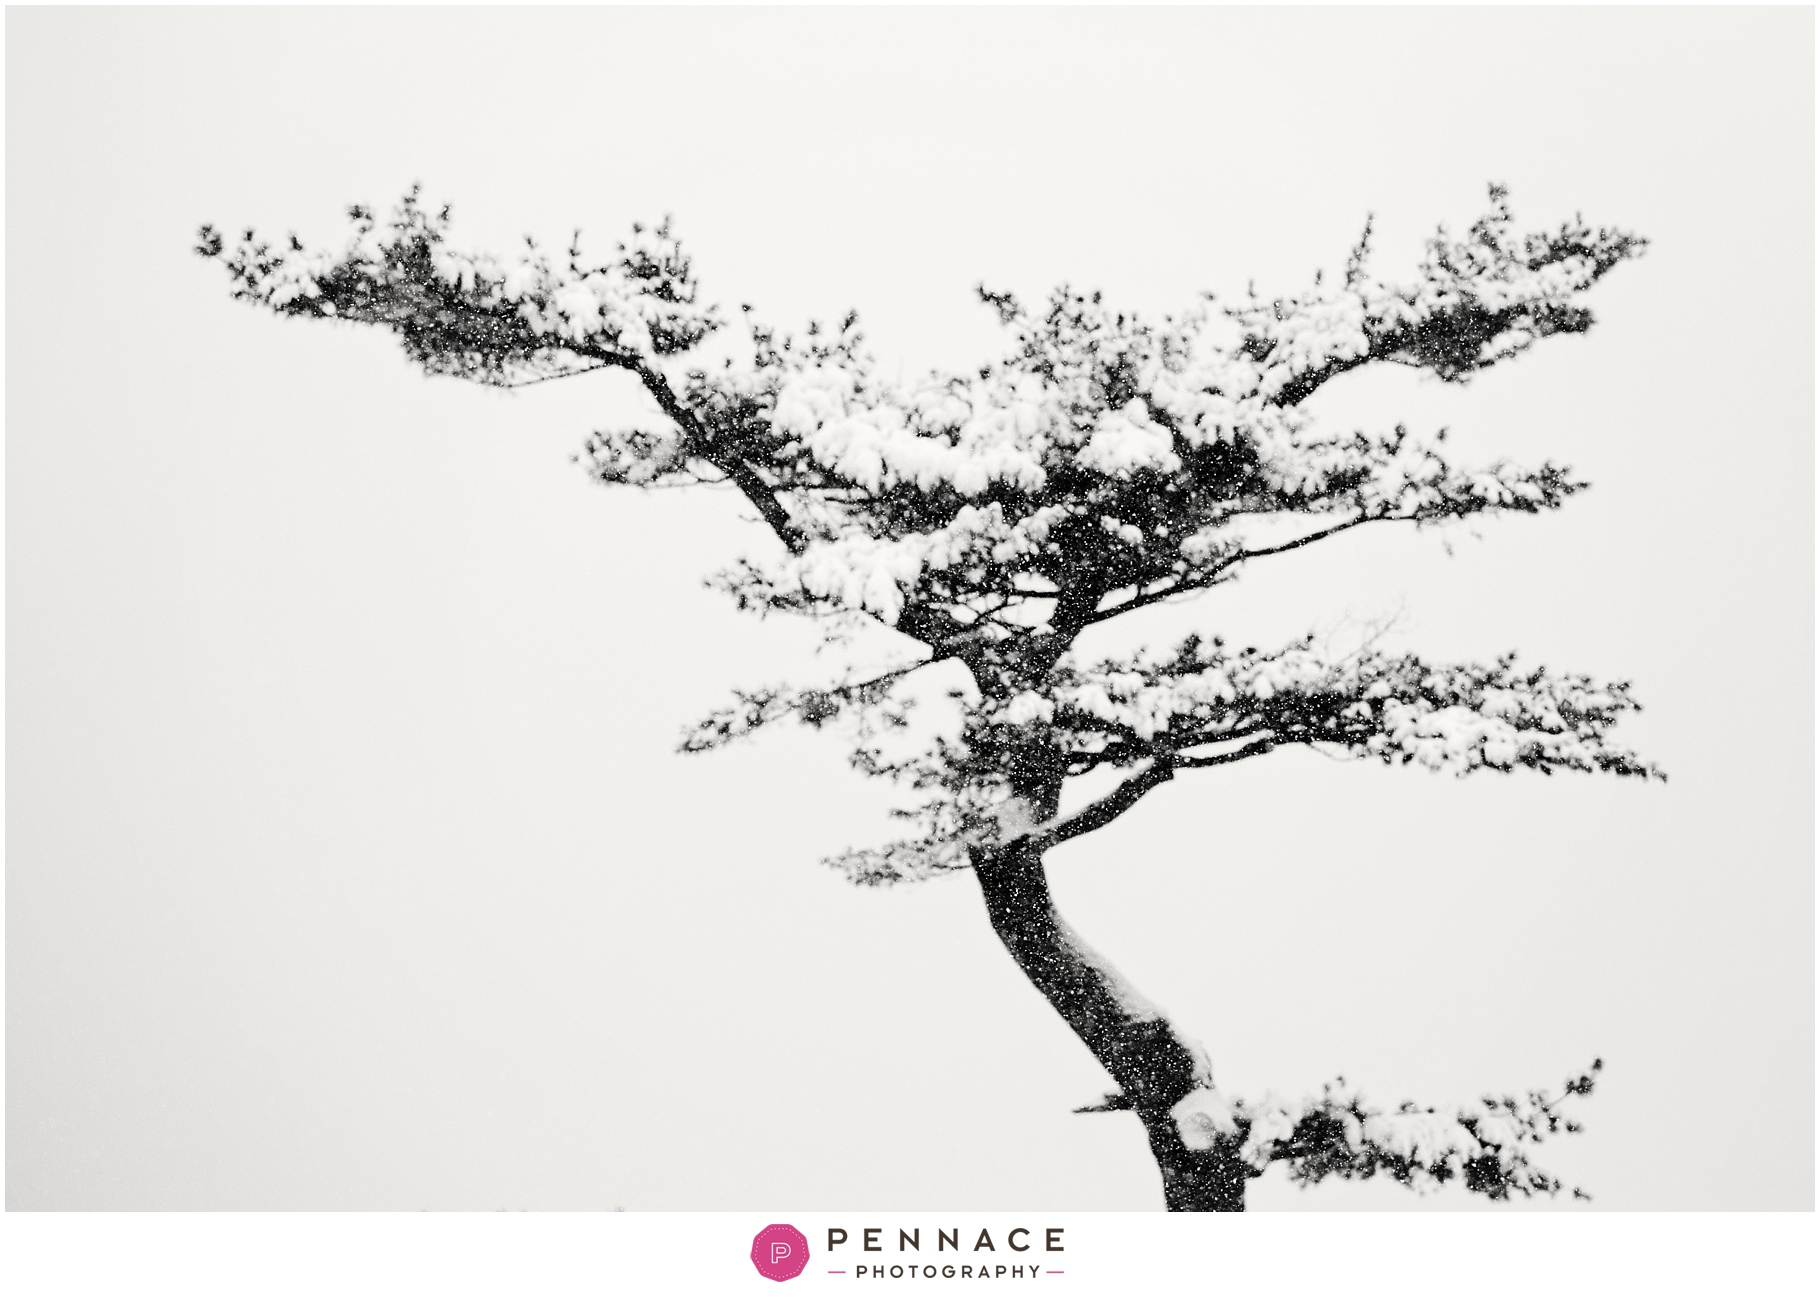 Abstract Snow Photo